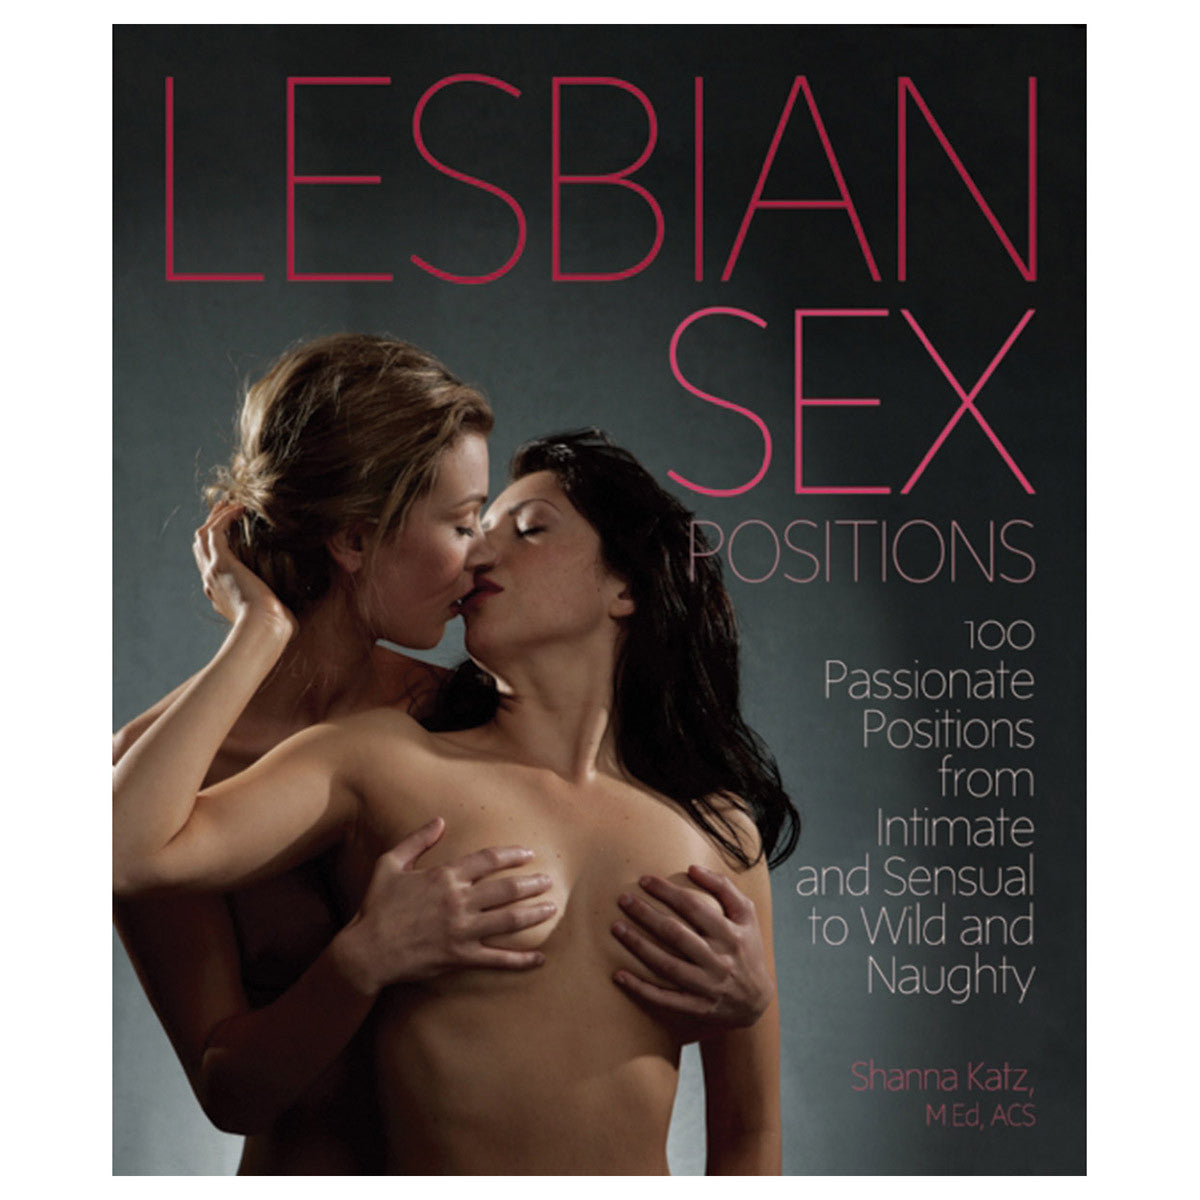 Lesbian Sex Positions: 100 Passionate Positions from Intimate and Sensual to Wild and Naughty